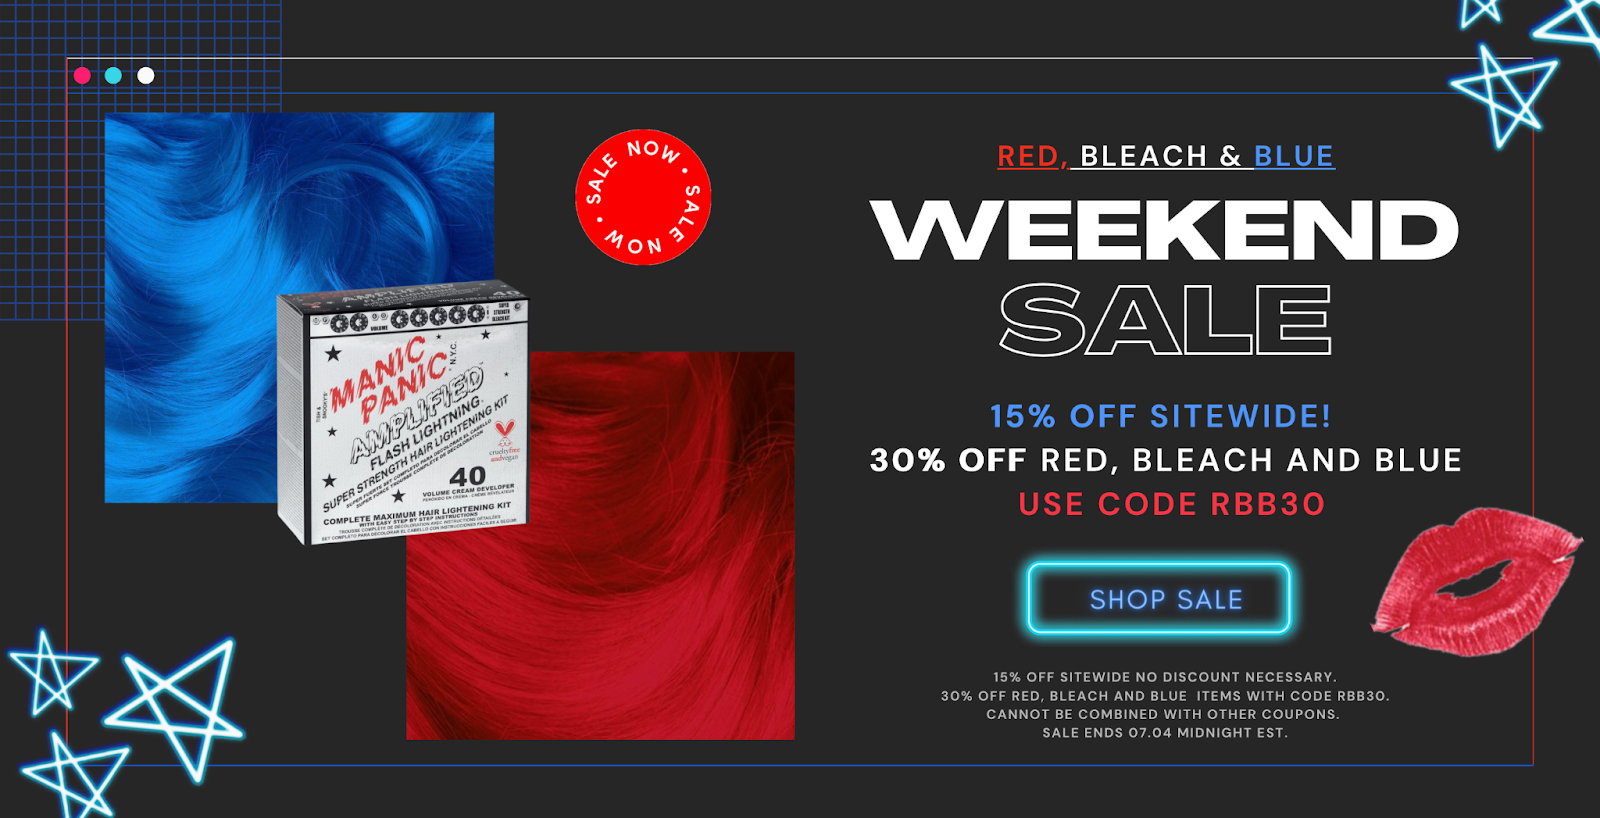 15% OFF SITEWIDE 30% OFF RED, BLEACH AND BLUE with code rbb30.